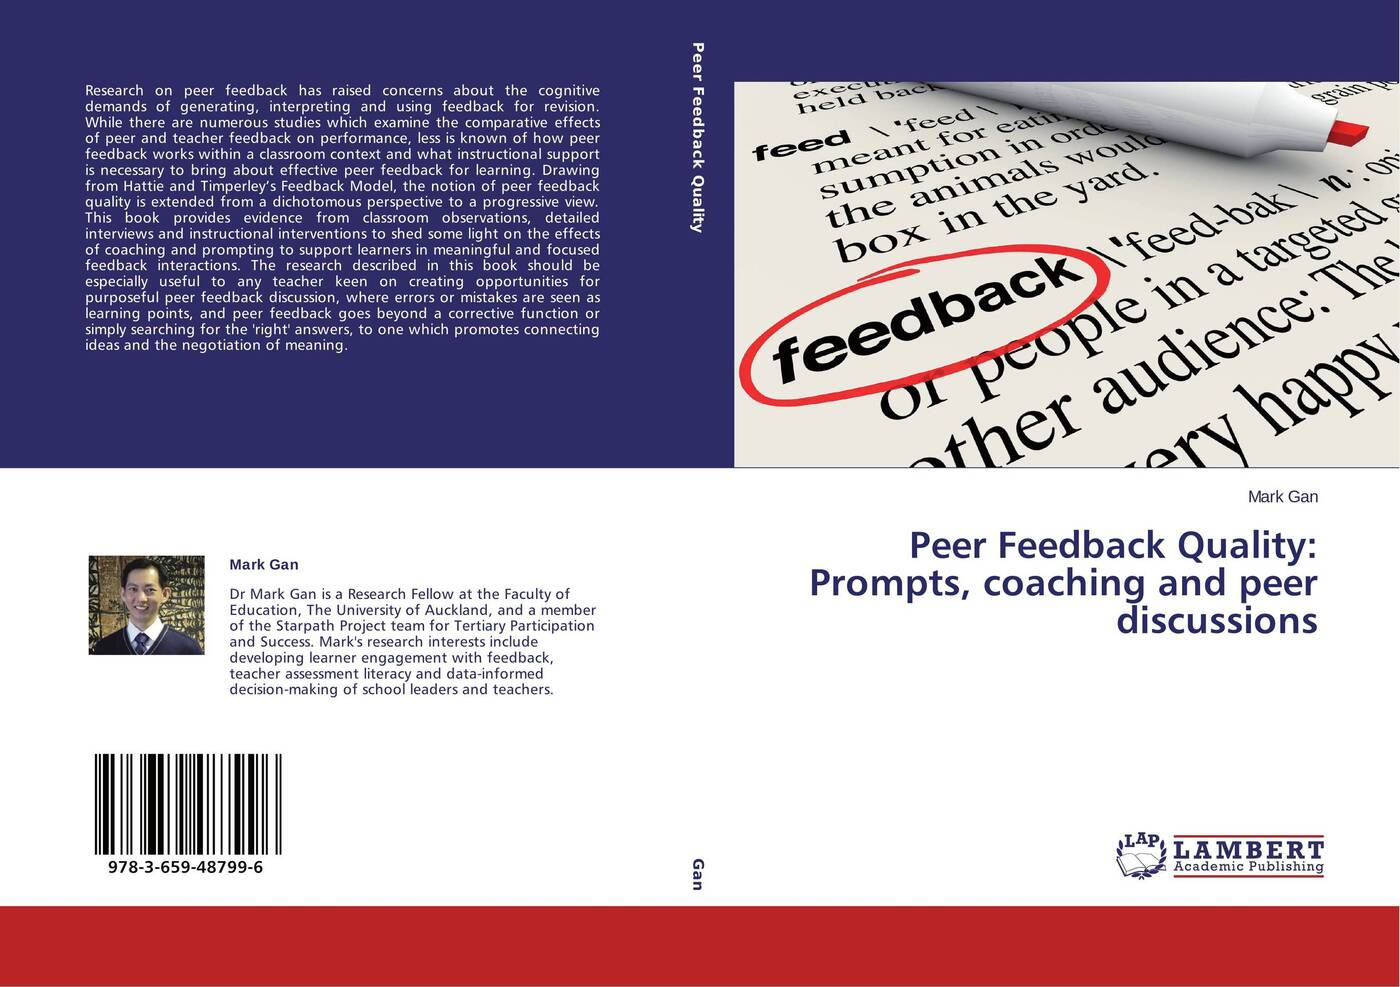 Mark Gan Peer Feedback Quality: Prompts, coaching and peer discussions